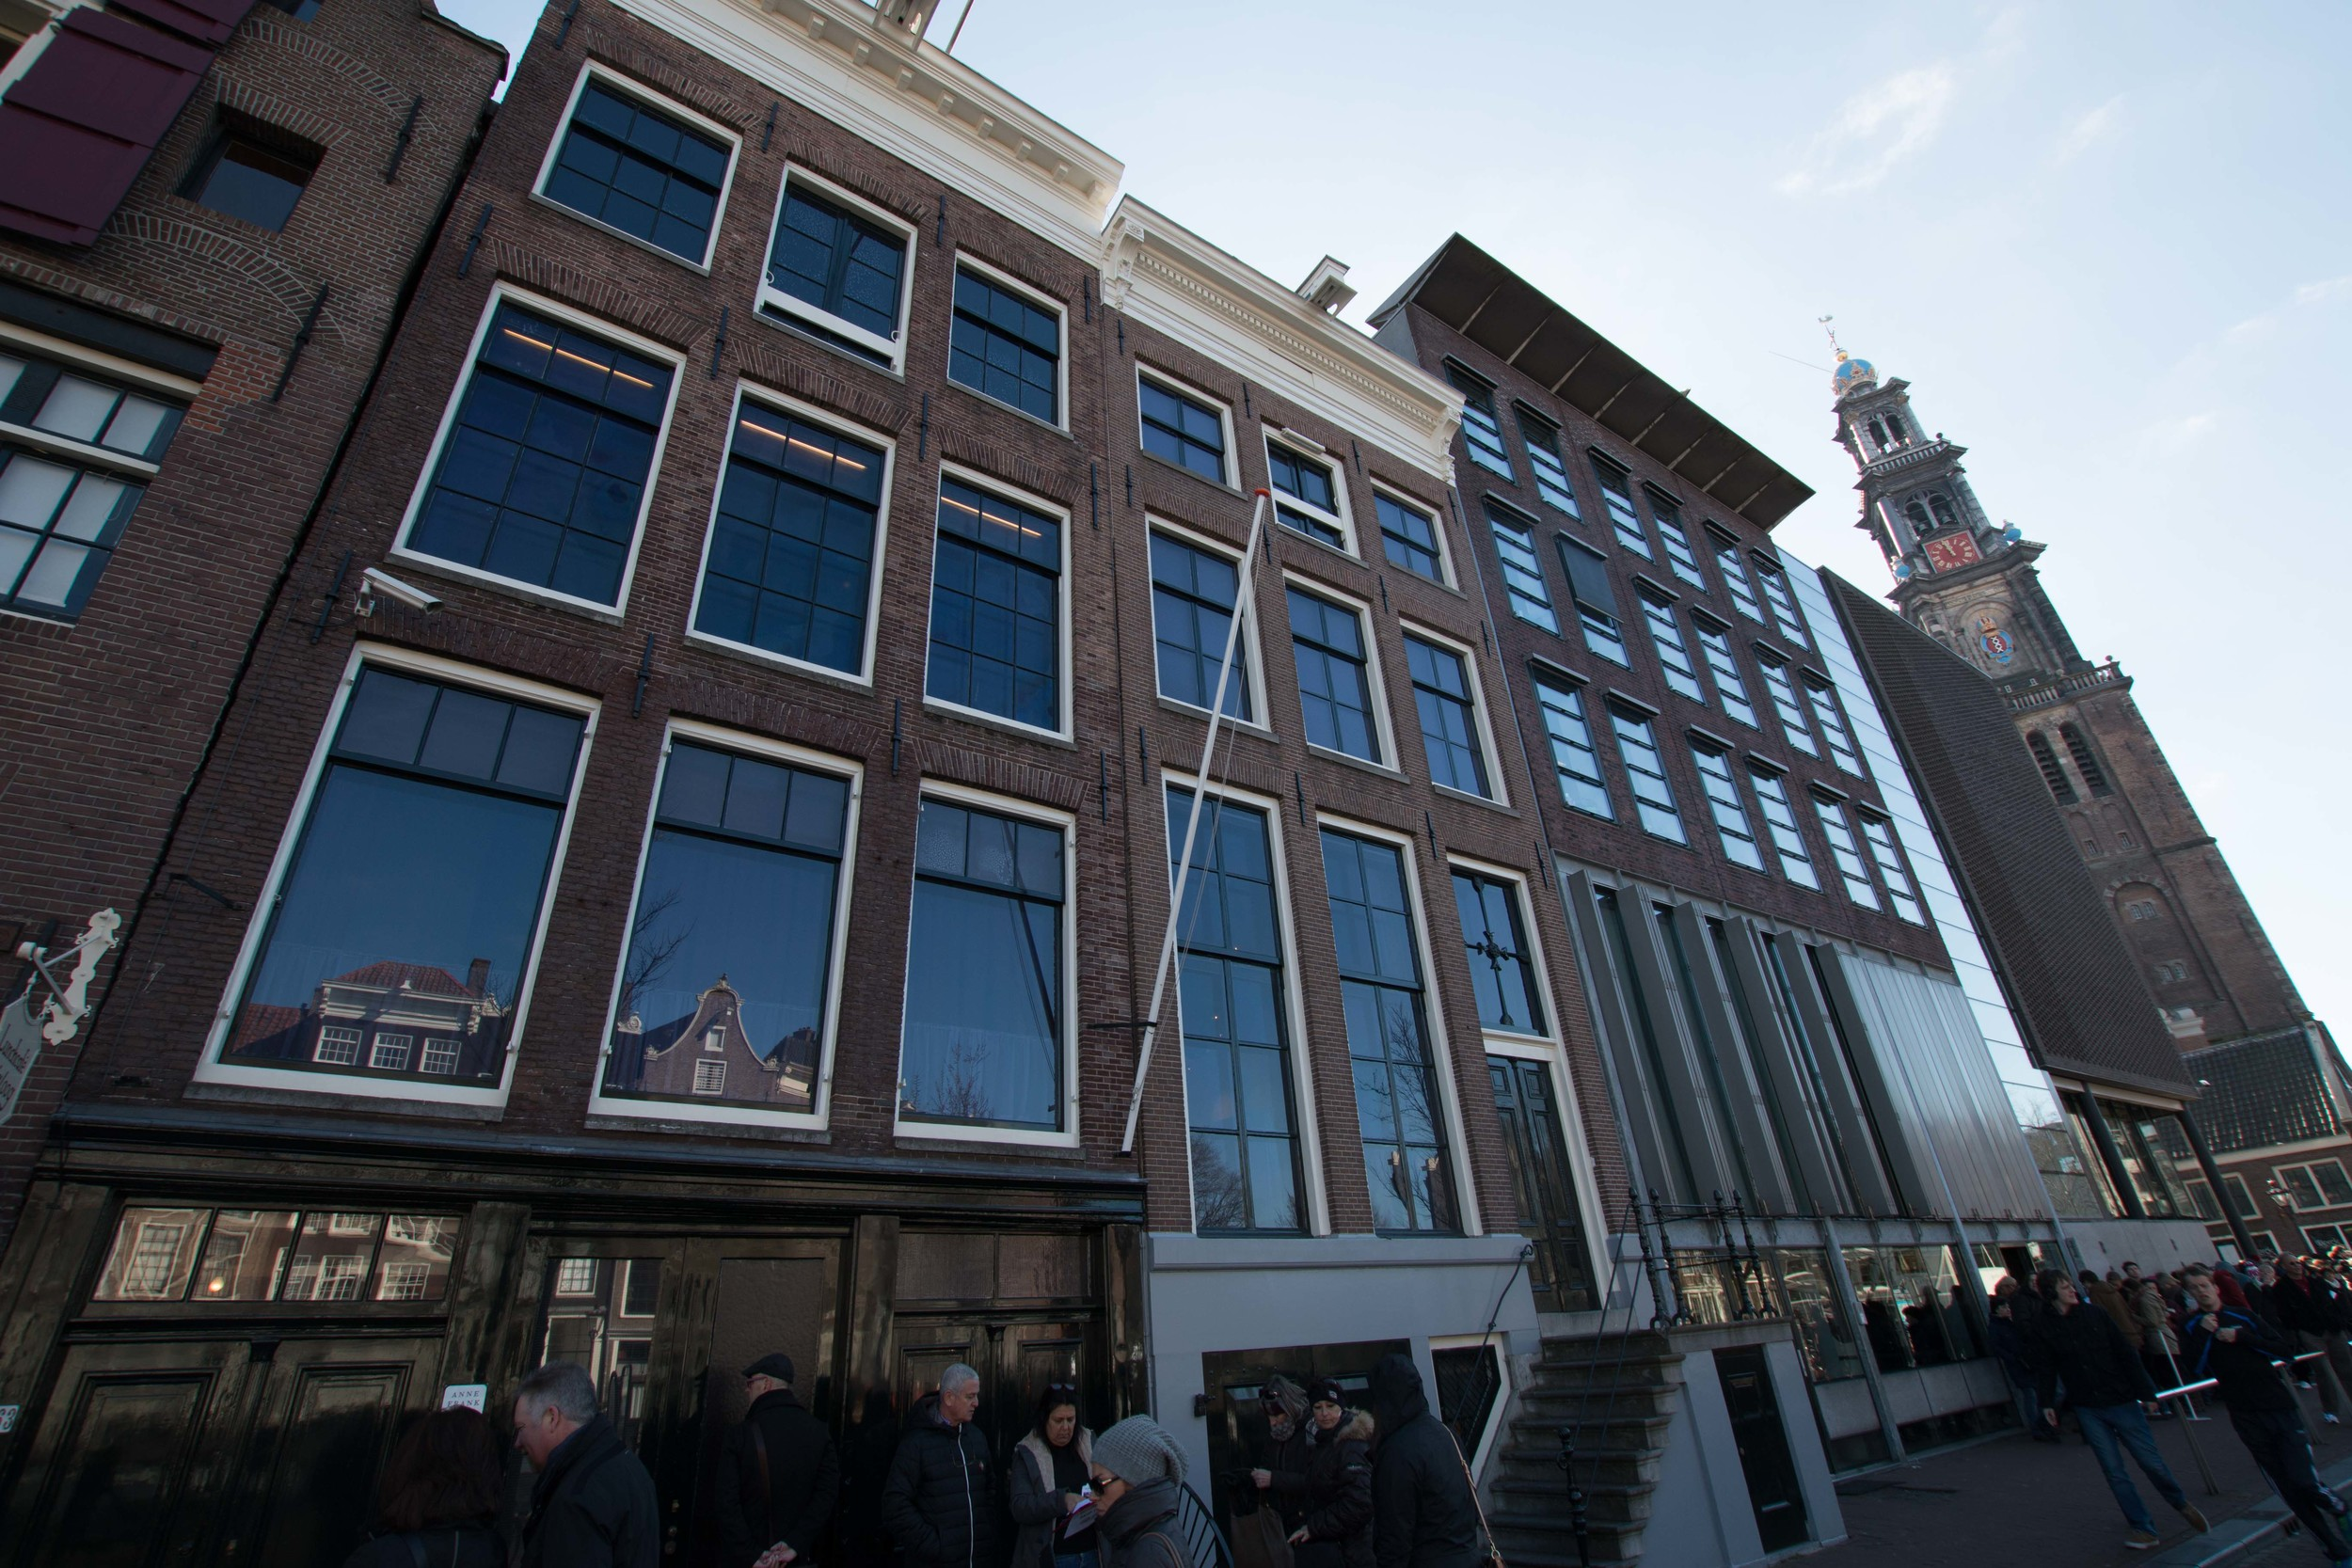 The outside of the Anne frank House. It is the one On the left.